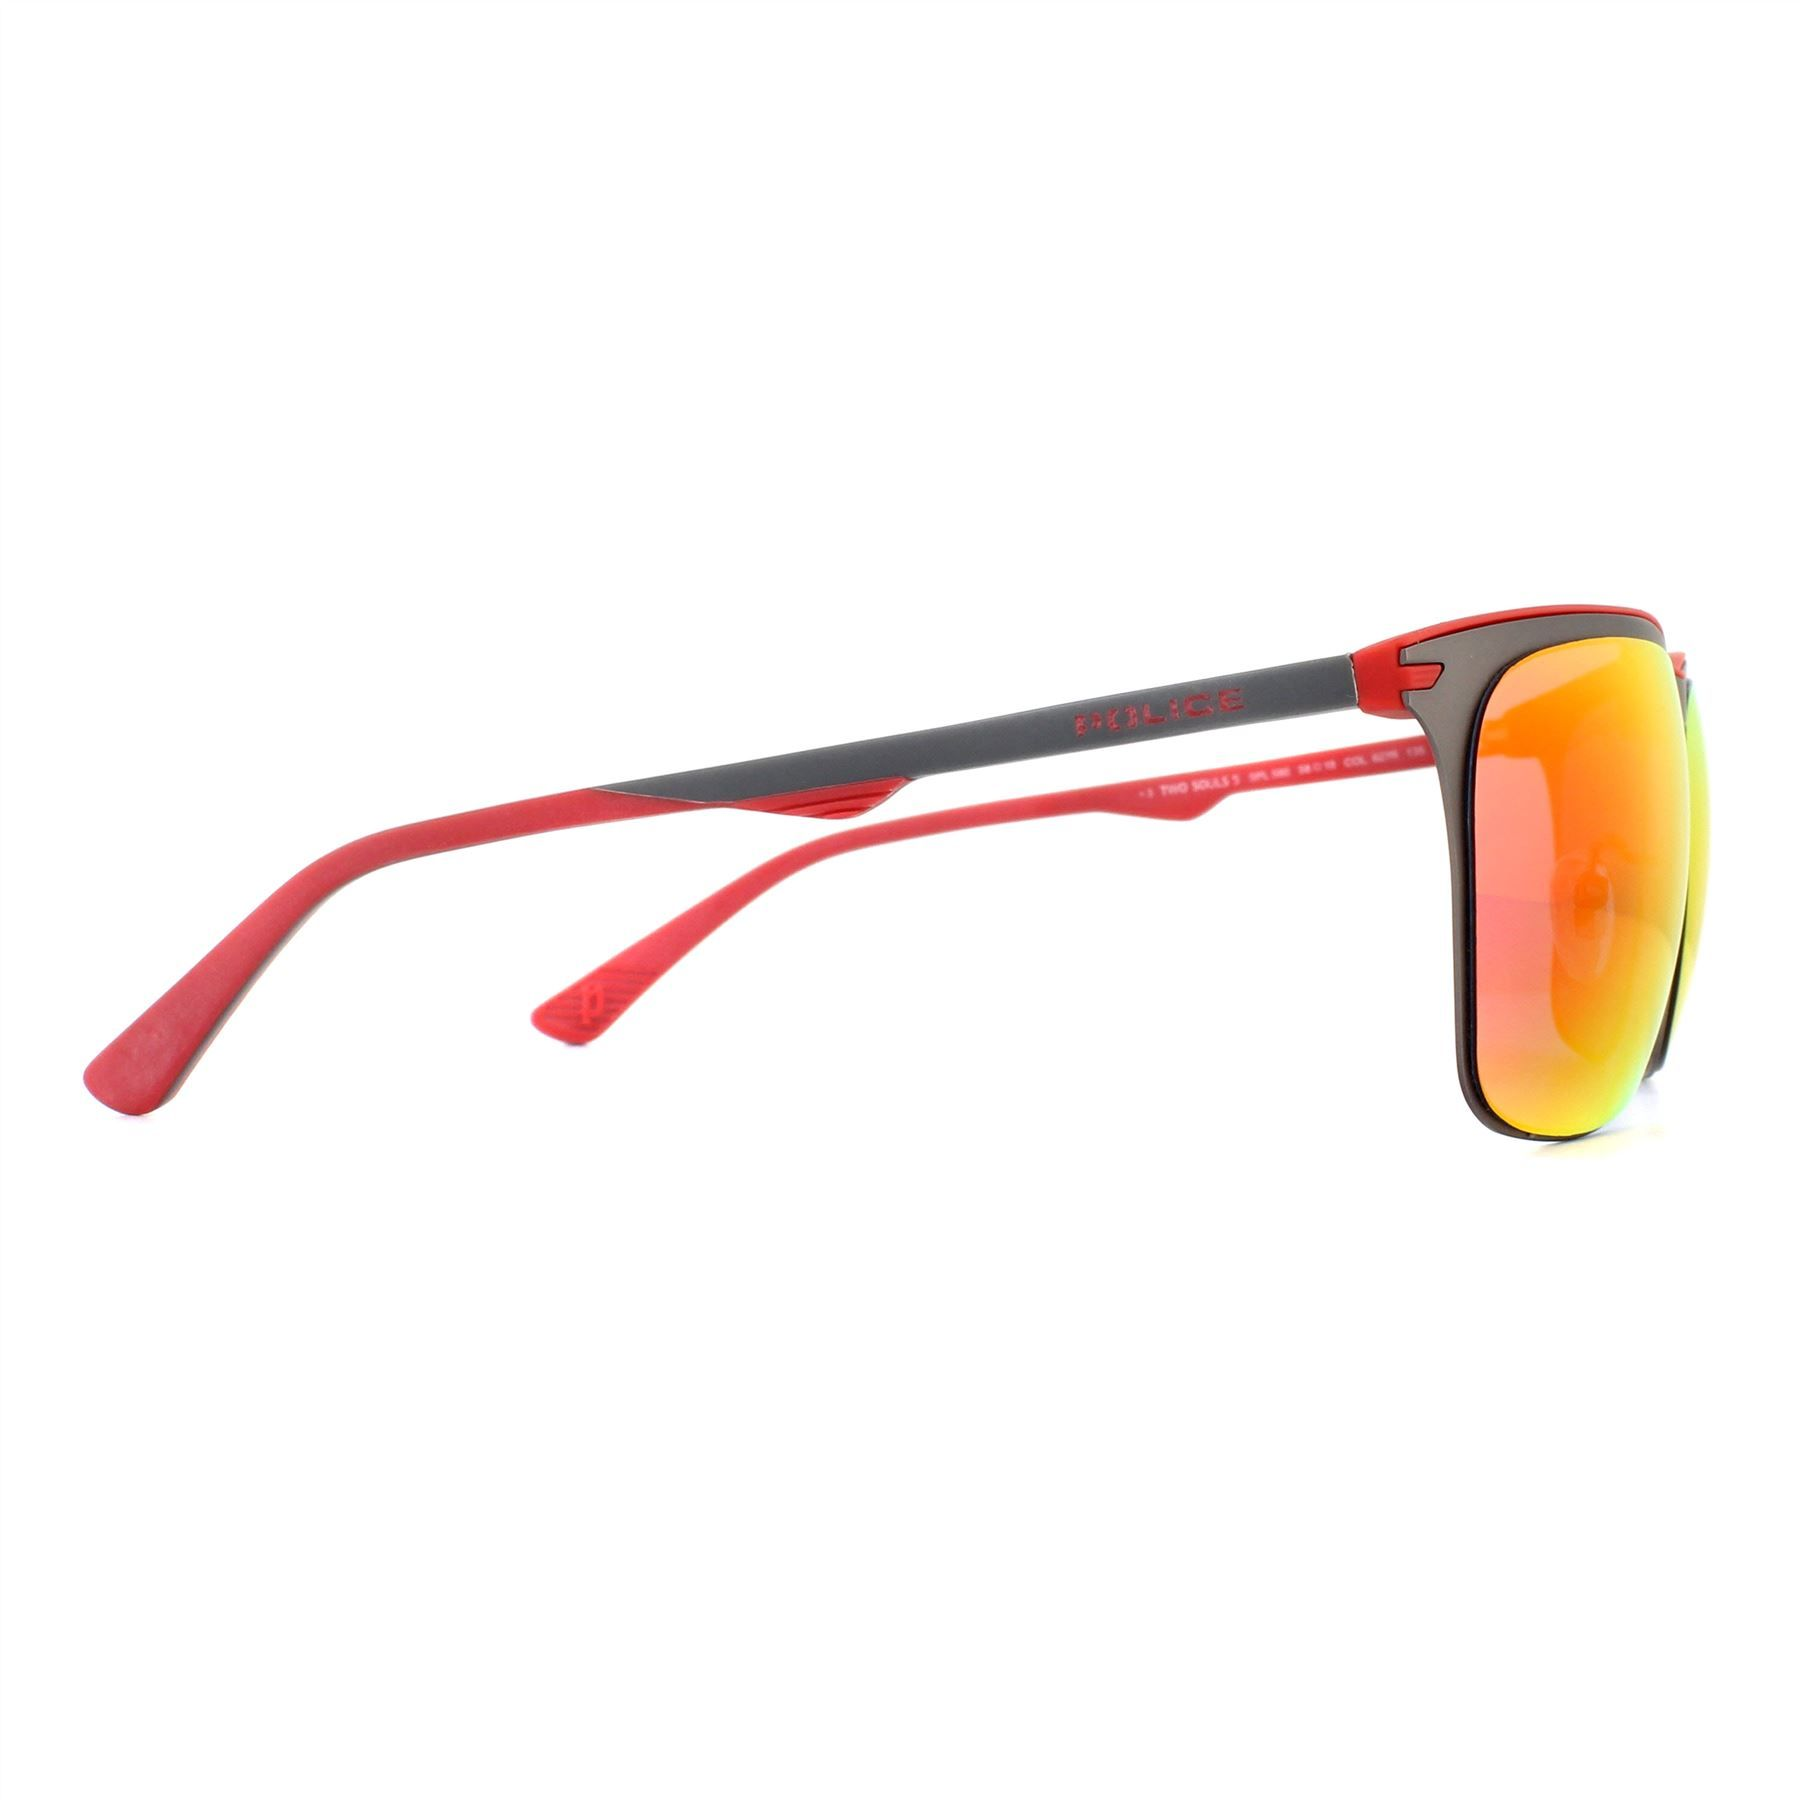 Police Sunglasses SPL580 Two Souls 5 627R Matte Gunmetal Red Multilayer Red